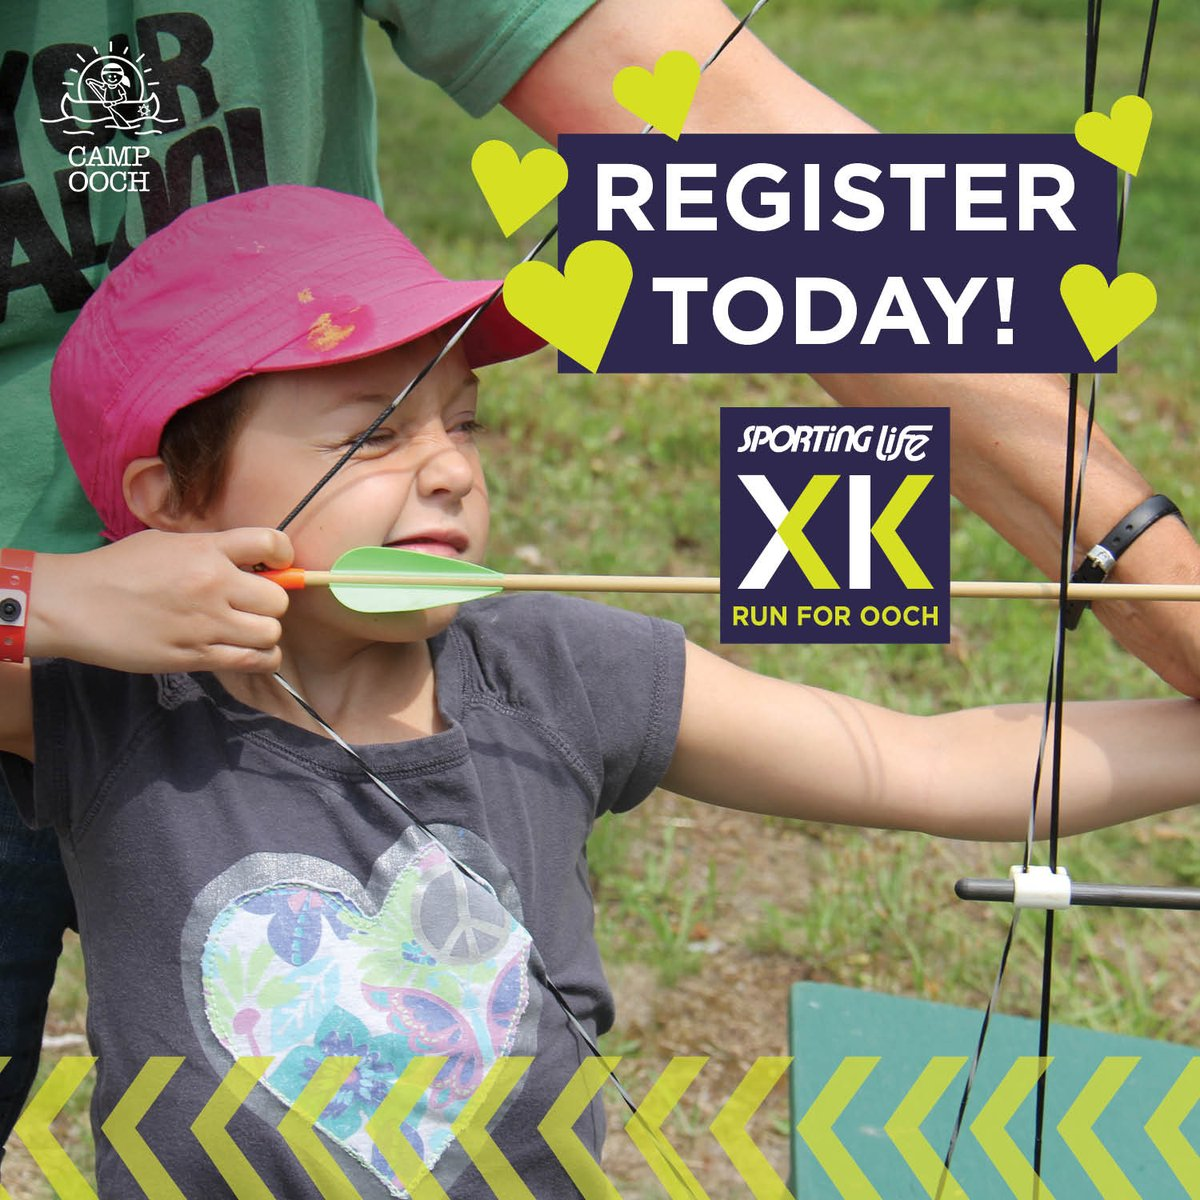 Show Ooch some love and register today for the Sporting Life 10k! Toronto registration fees increase tomorrow. Register now to save https://sportinglife10k.ca/toronto/register/… #SL10K #CampOoch #WeRunForOoch